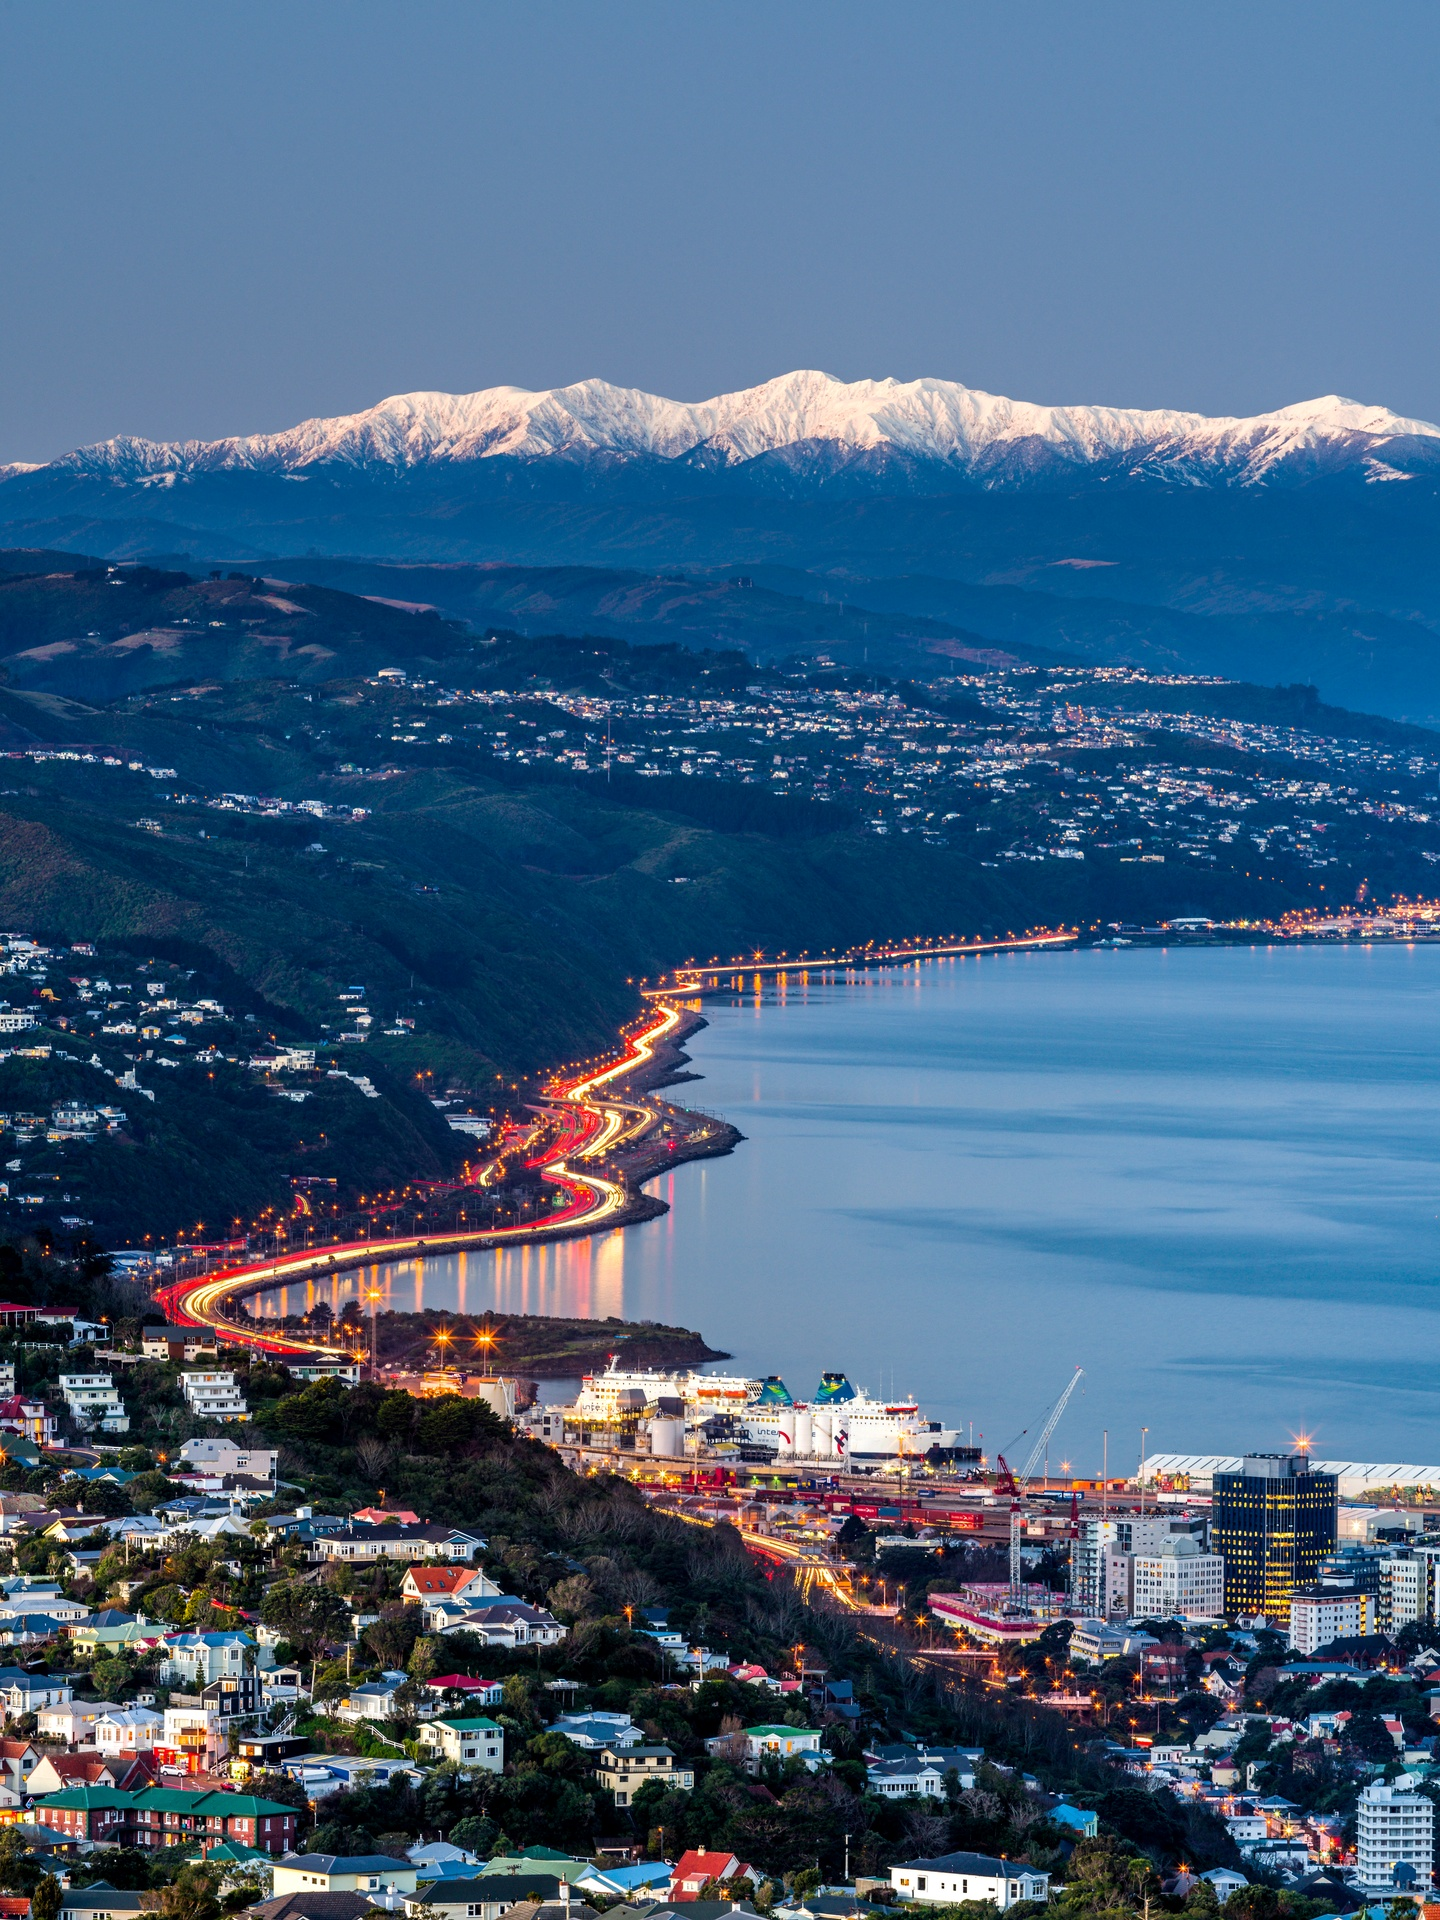 52793TC00-Wellington City and Harbour with snow covered Tararua Ranges above SH1 and SH2 traffic to the Hutt Valley. Wadestown, Thorndon and Kaiwharawhara in foreground. Winter dusk. Wellington, Wellington City District, North Island, NZ